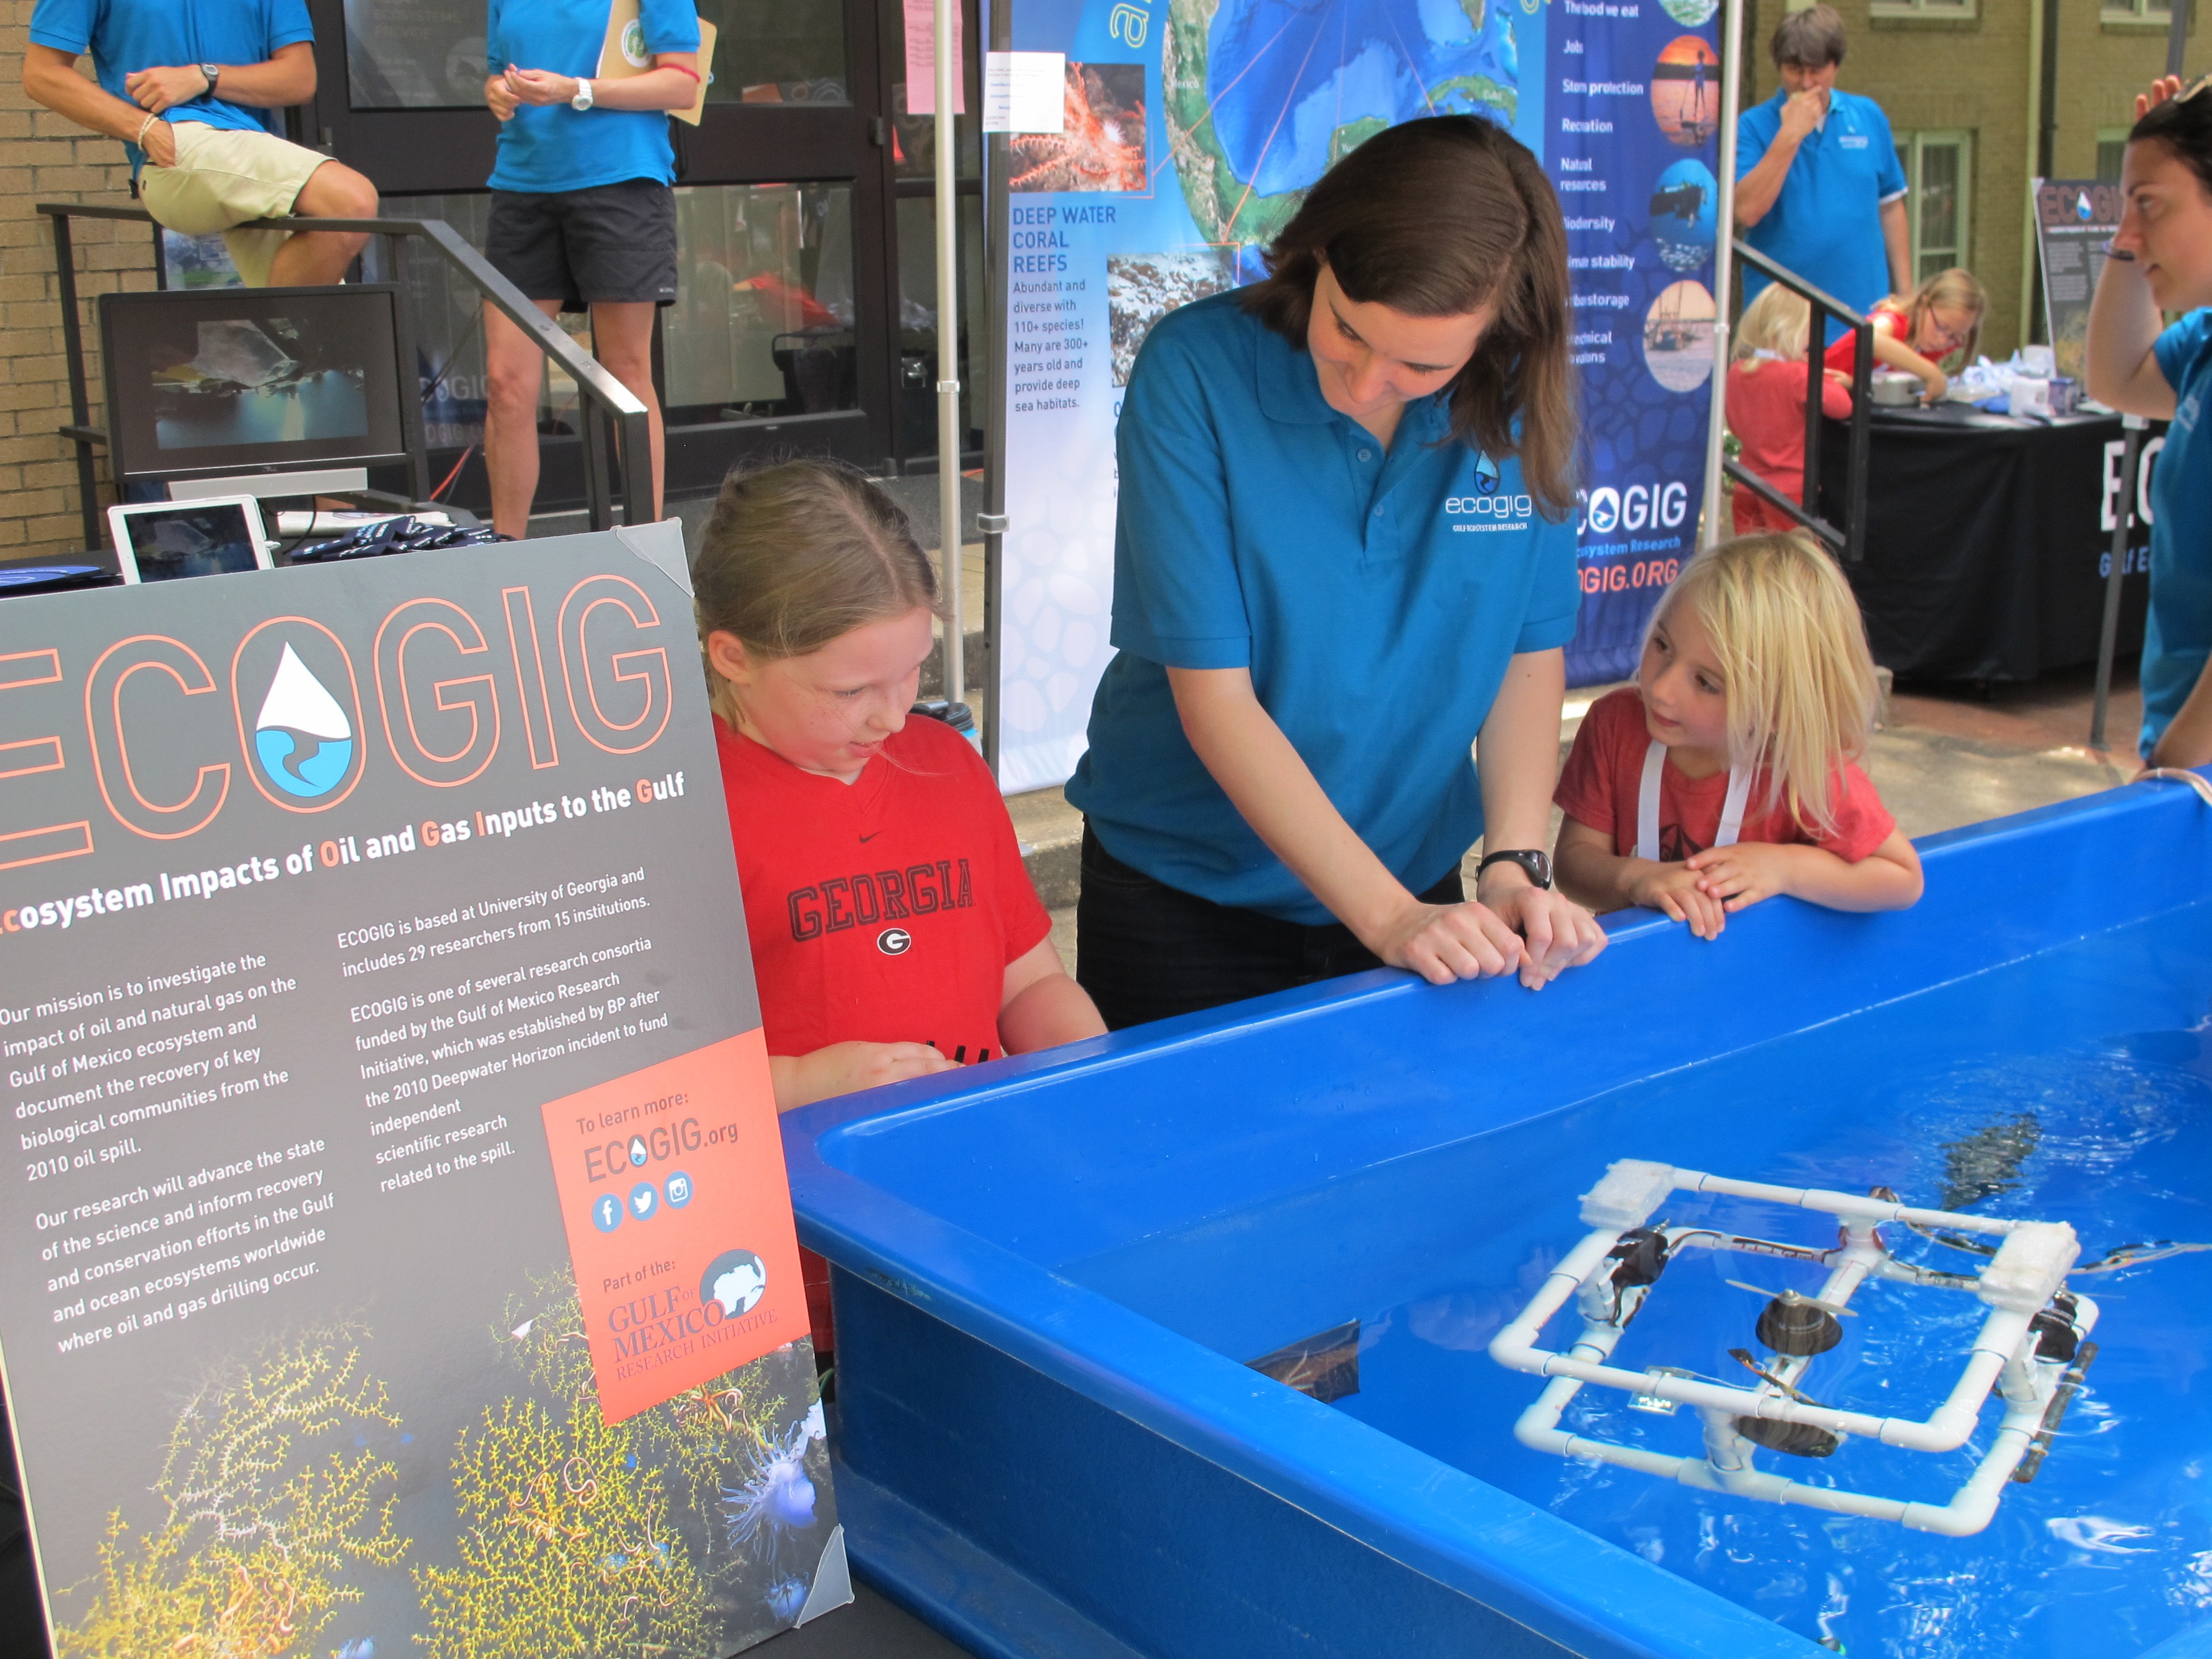 <div style='color:#000000;'><br /><br /><h2>2015 UGA football home game. ECOGIG graduate student Sarah Harrison shares her knowledge with visitors to the Ocean Discovery Zone before a University of Georgia home football game.</h2>(C)&nbsp;ECOGIG</div>